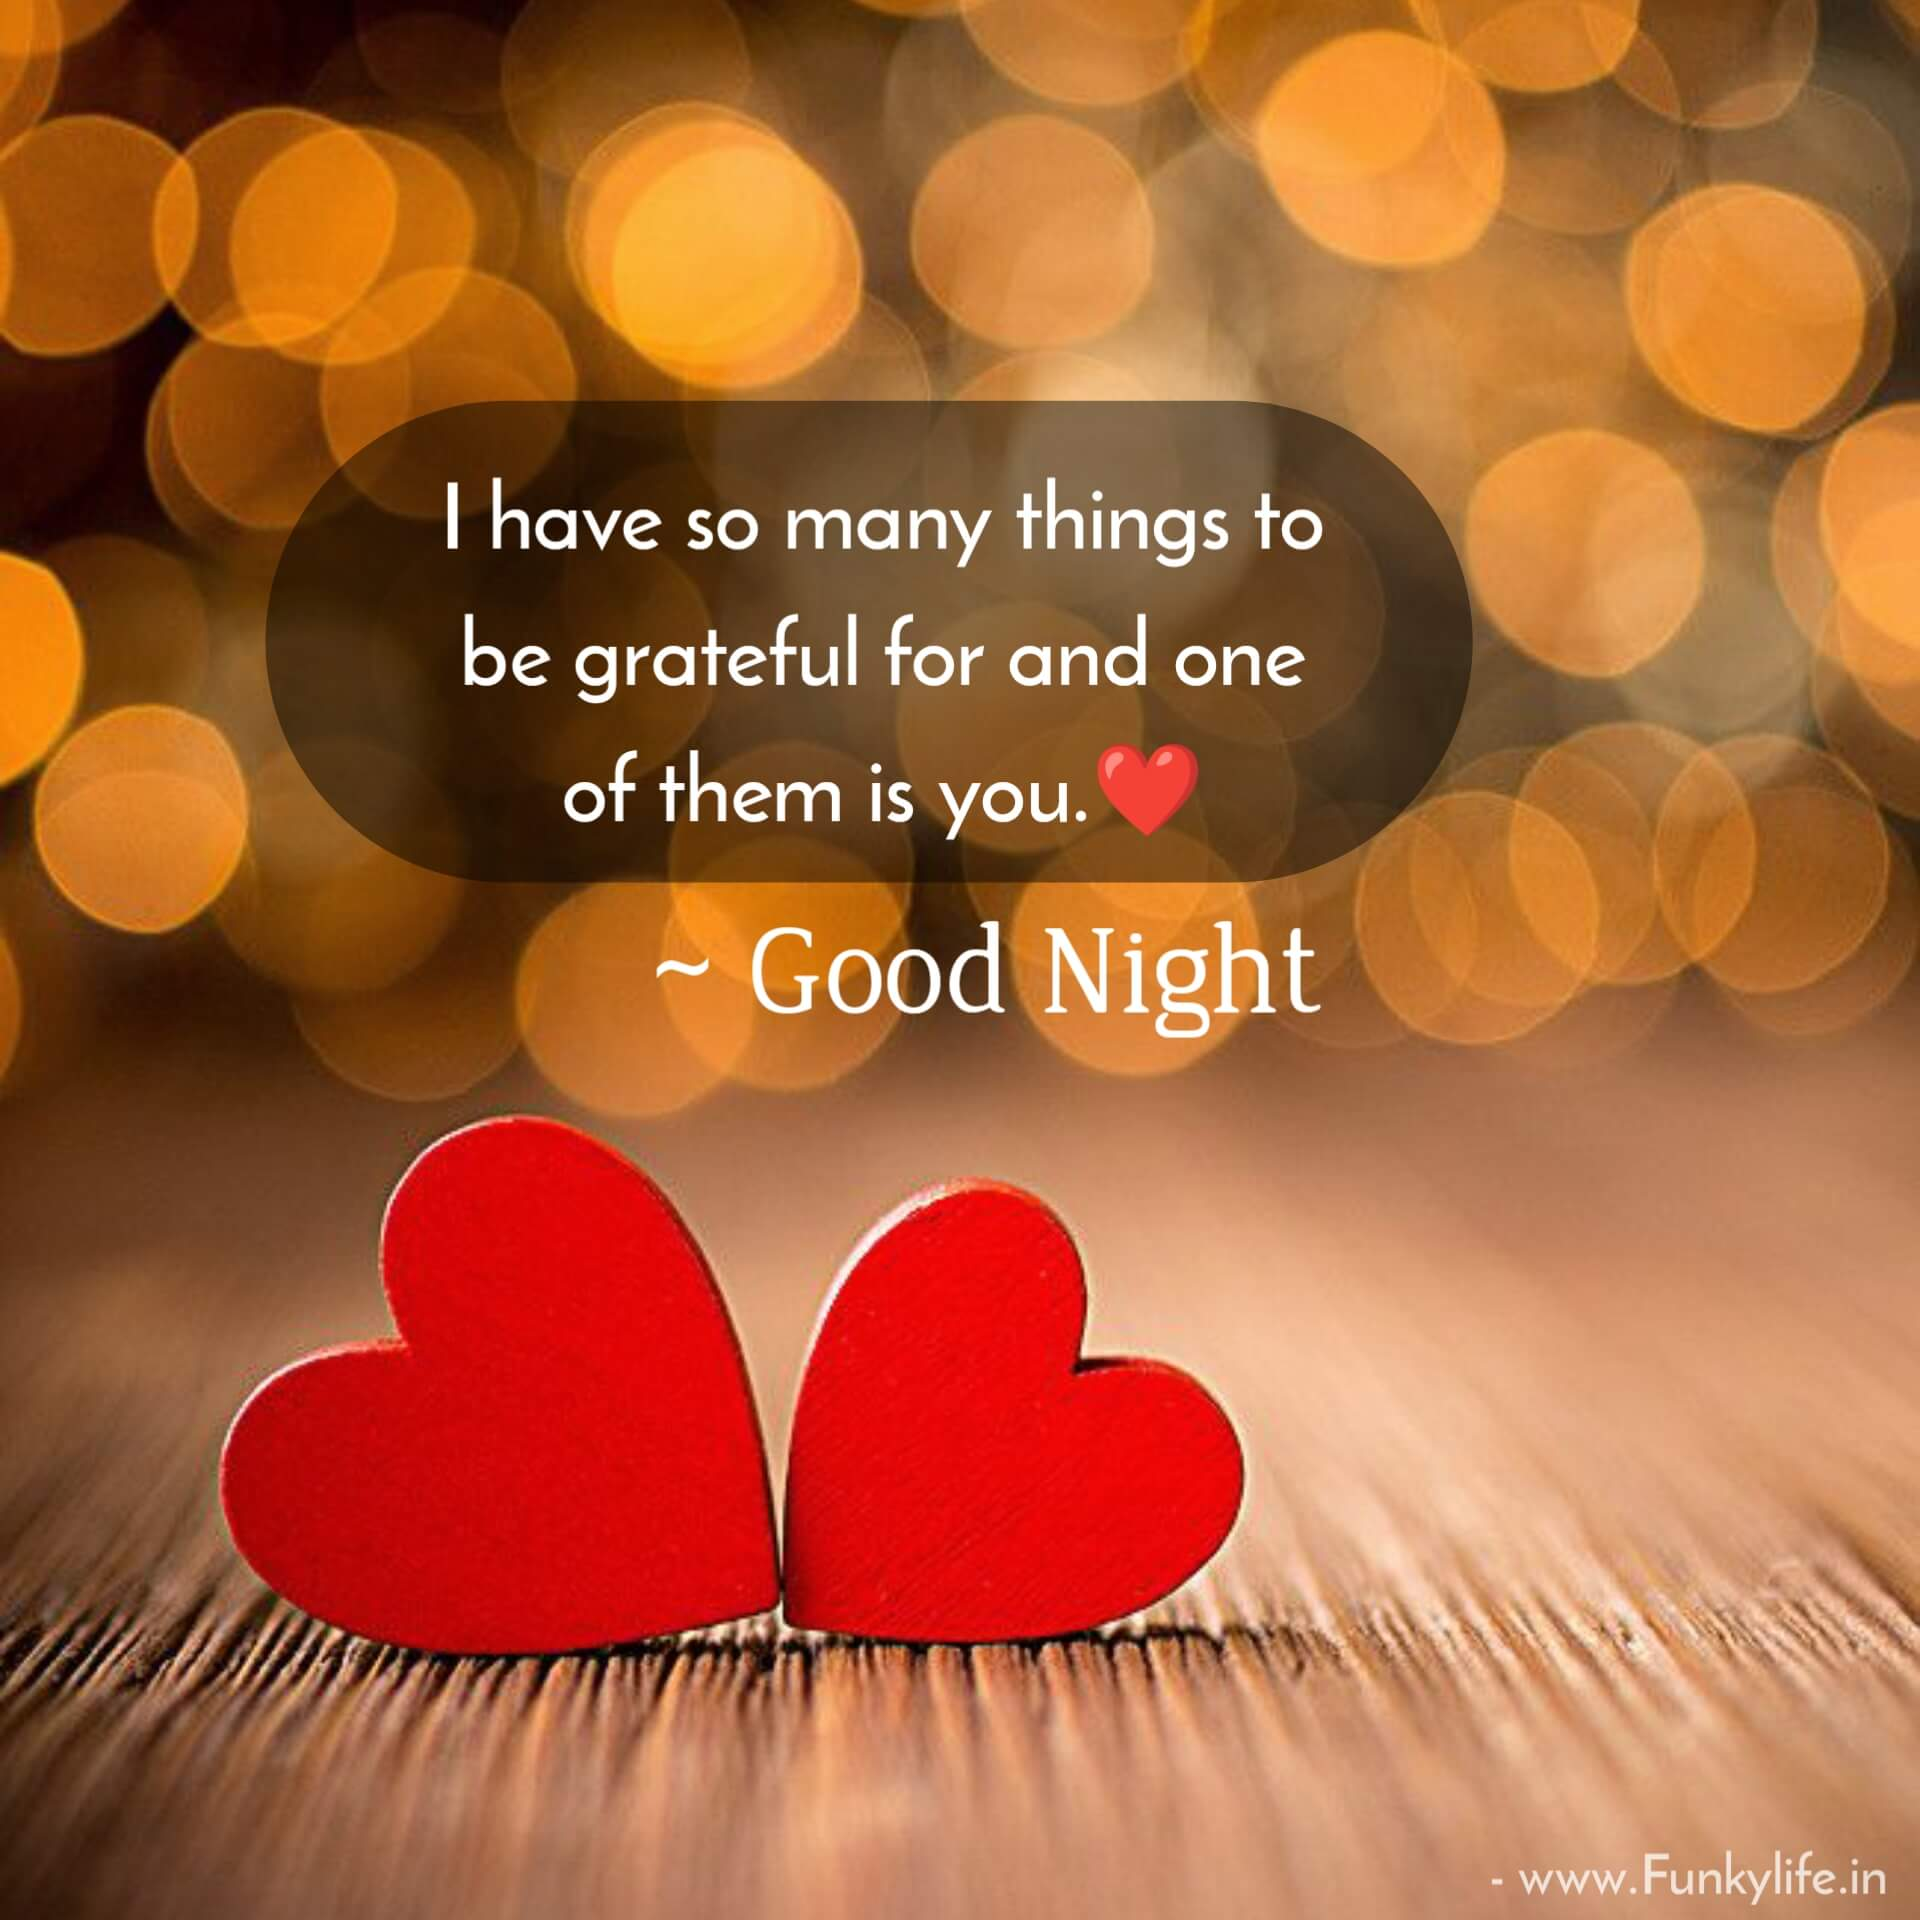 150+ Beautiful Good Night Quotes, Images and Messages in English